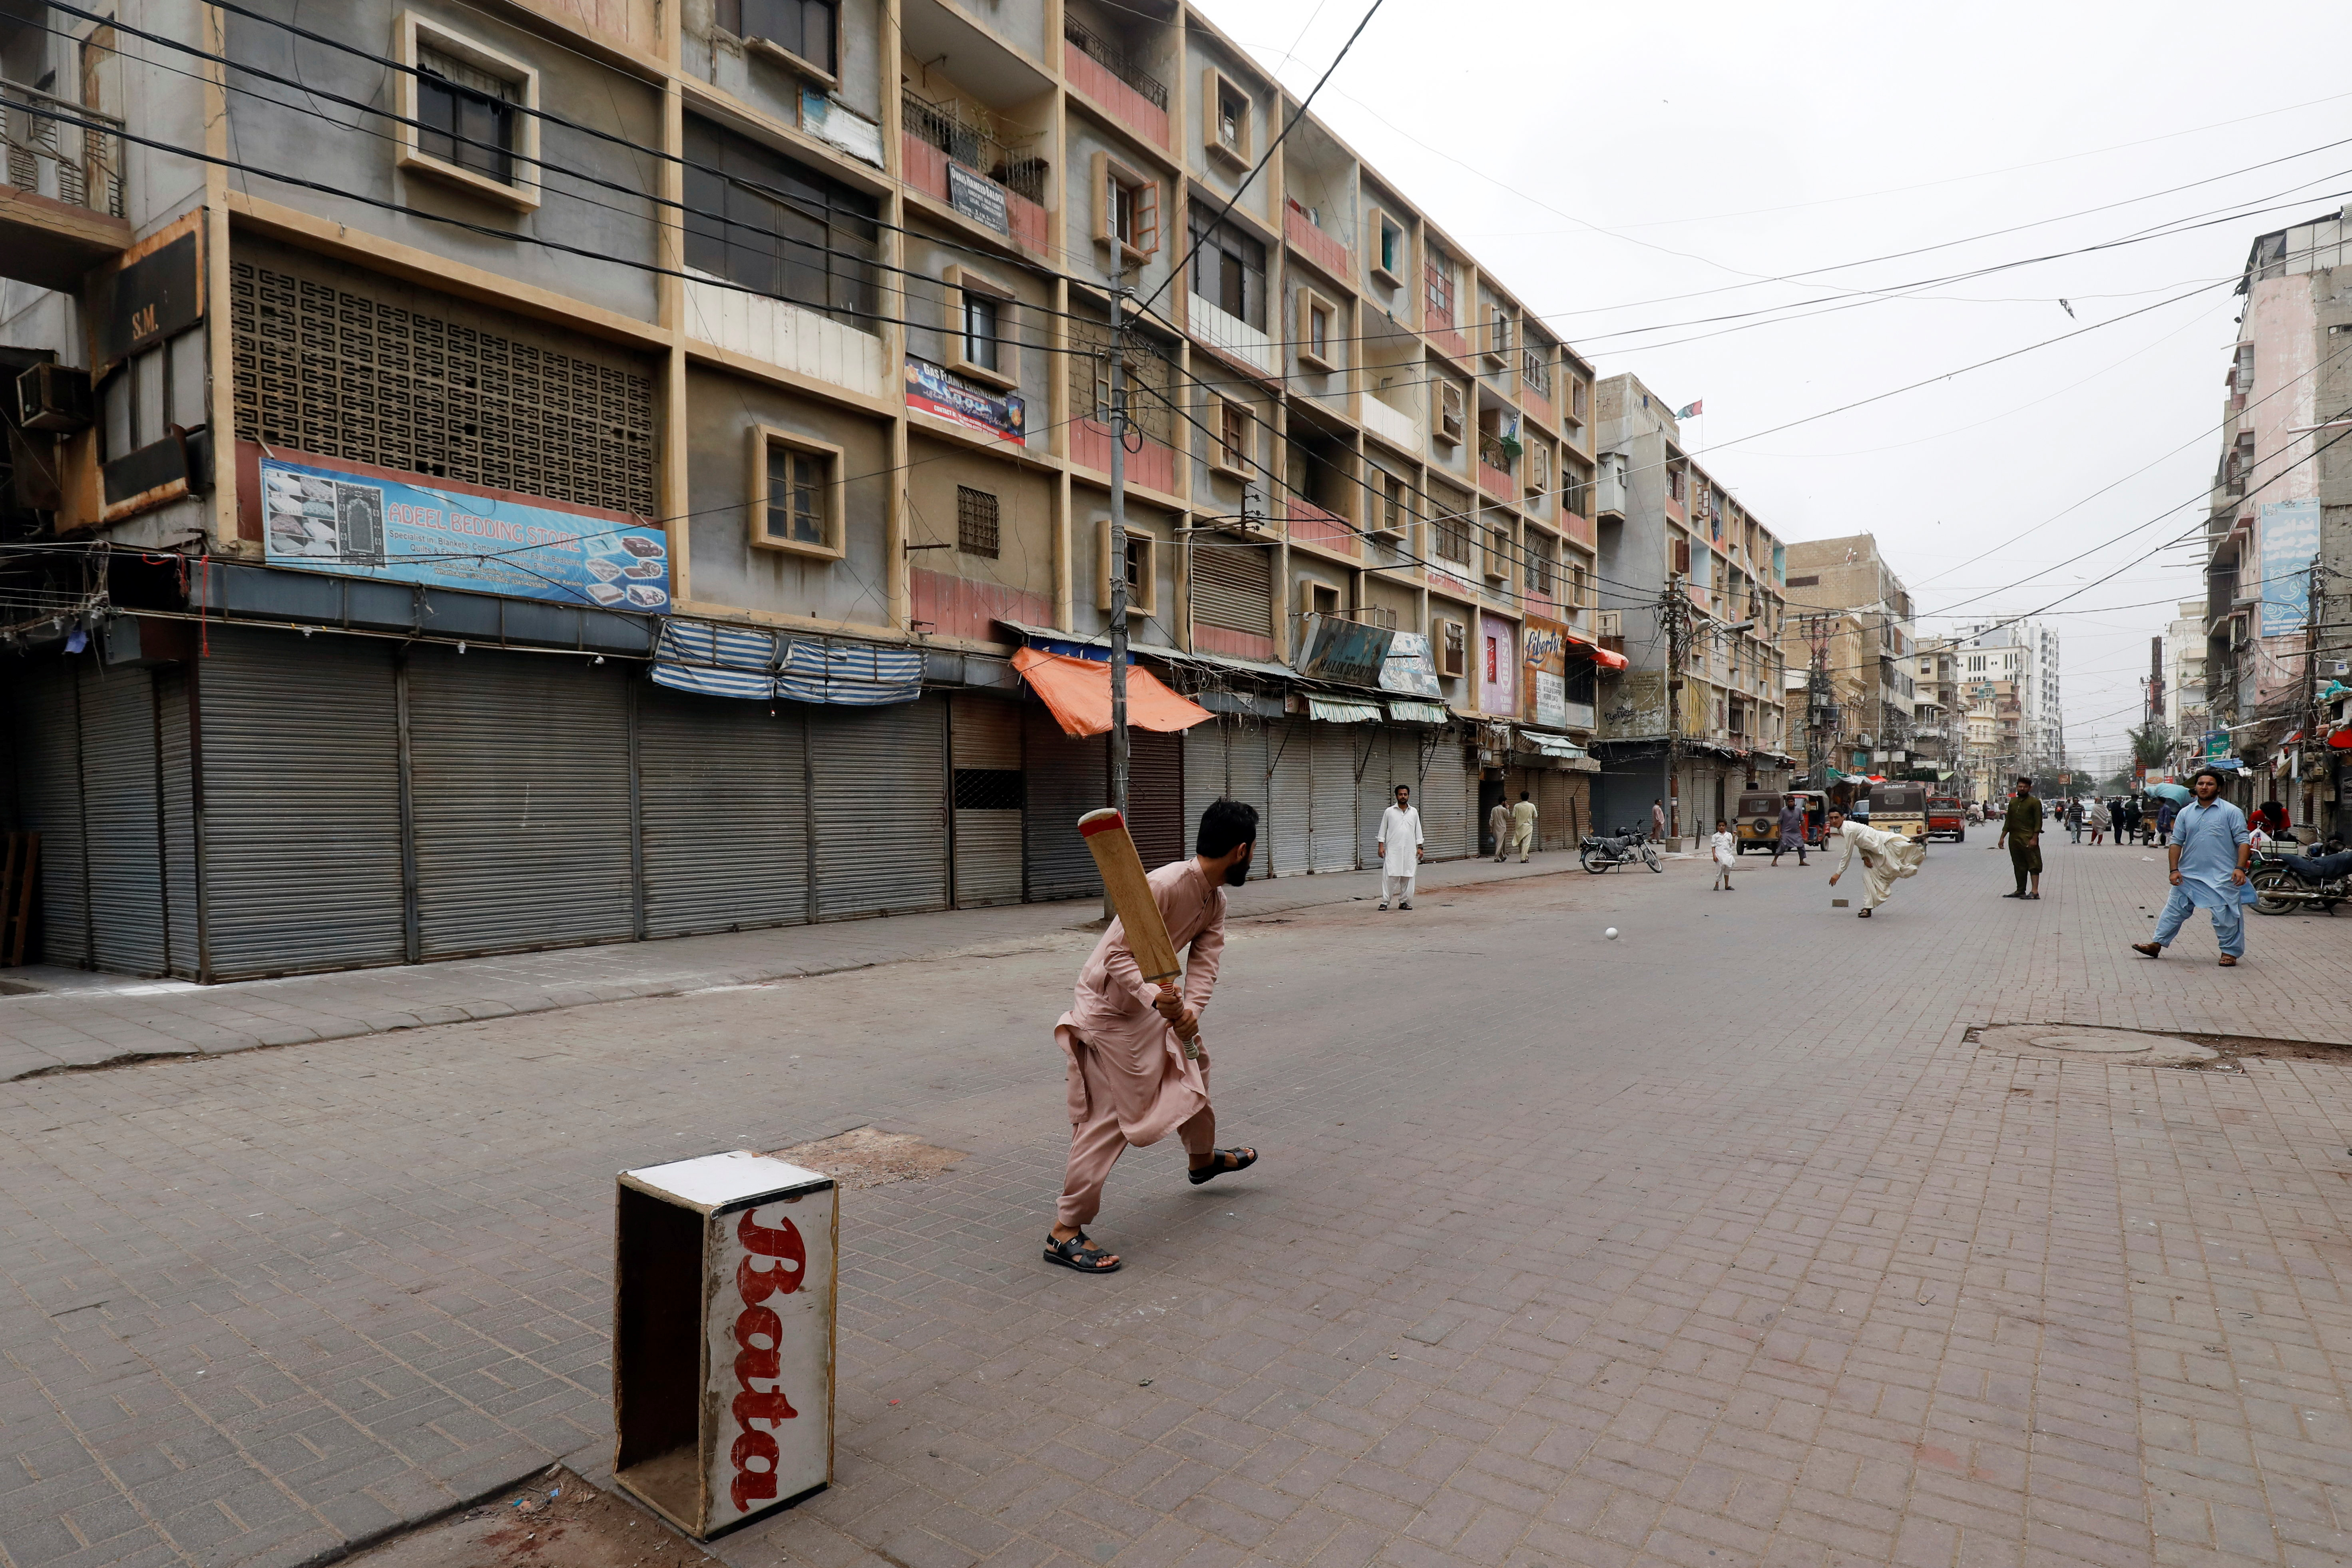 Shopkeepers play cricket along closed market during a partial lockdown after Sindh provincial government decided to shut markets, restaurants, public beaches and discouraged large gatherings to curb the outbreak of the coronavirus disease (COVID-19), in Karachi, Pakistan July 30, 2021. REUTERS/Akhtar Soomro